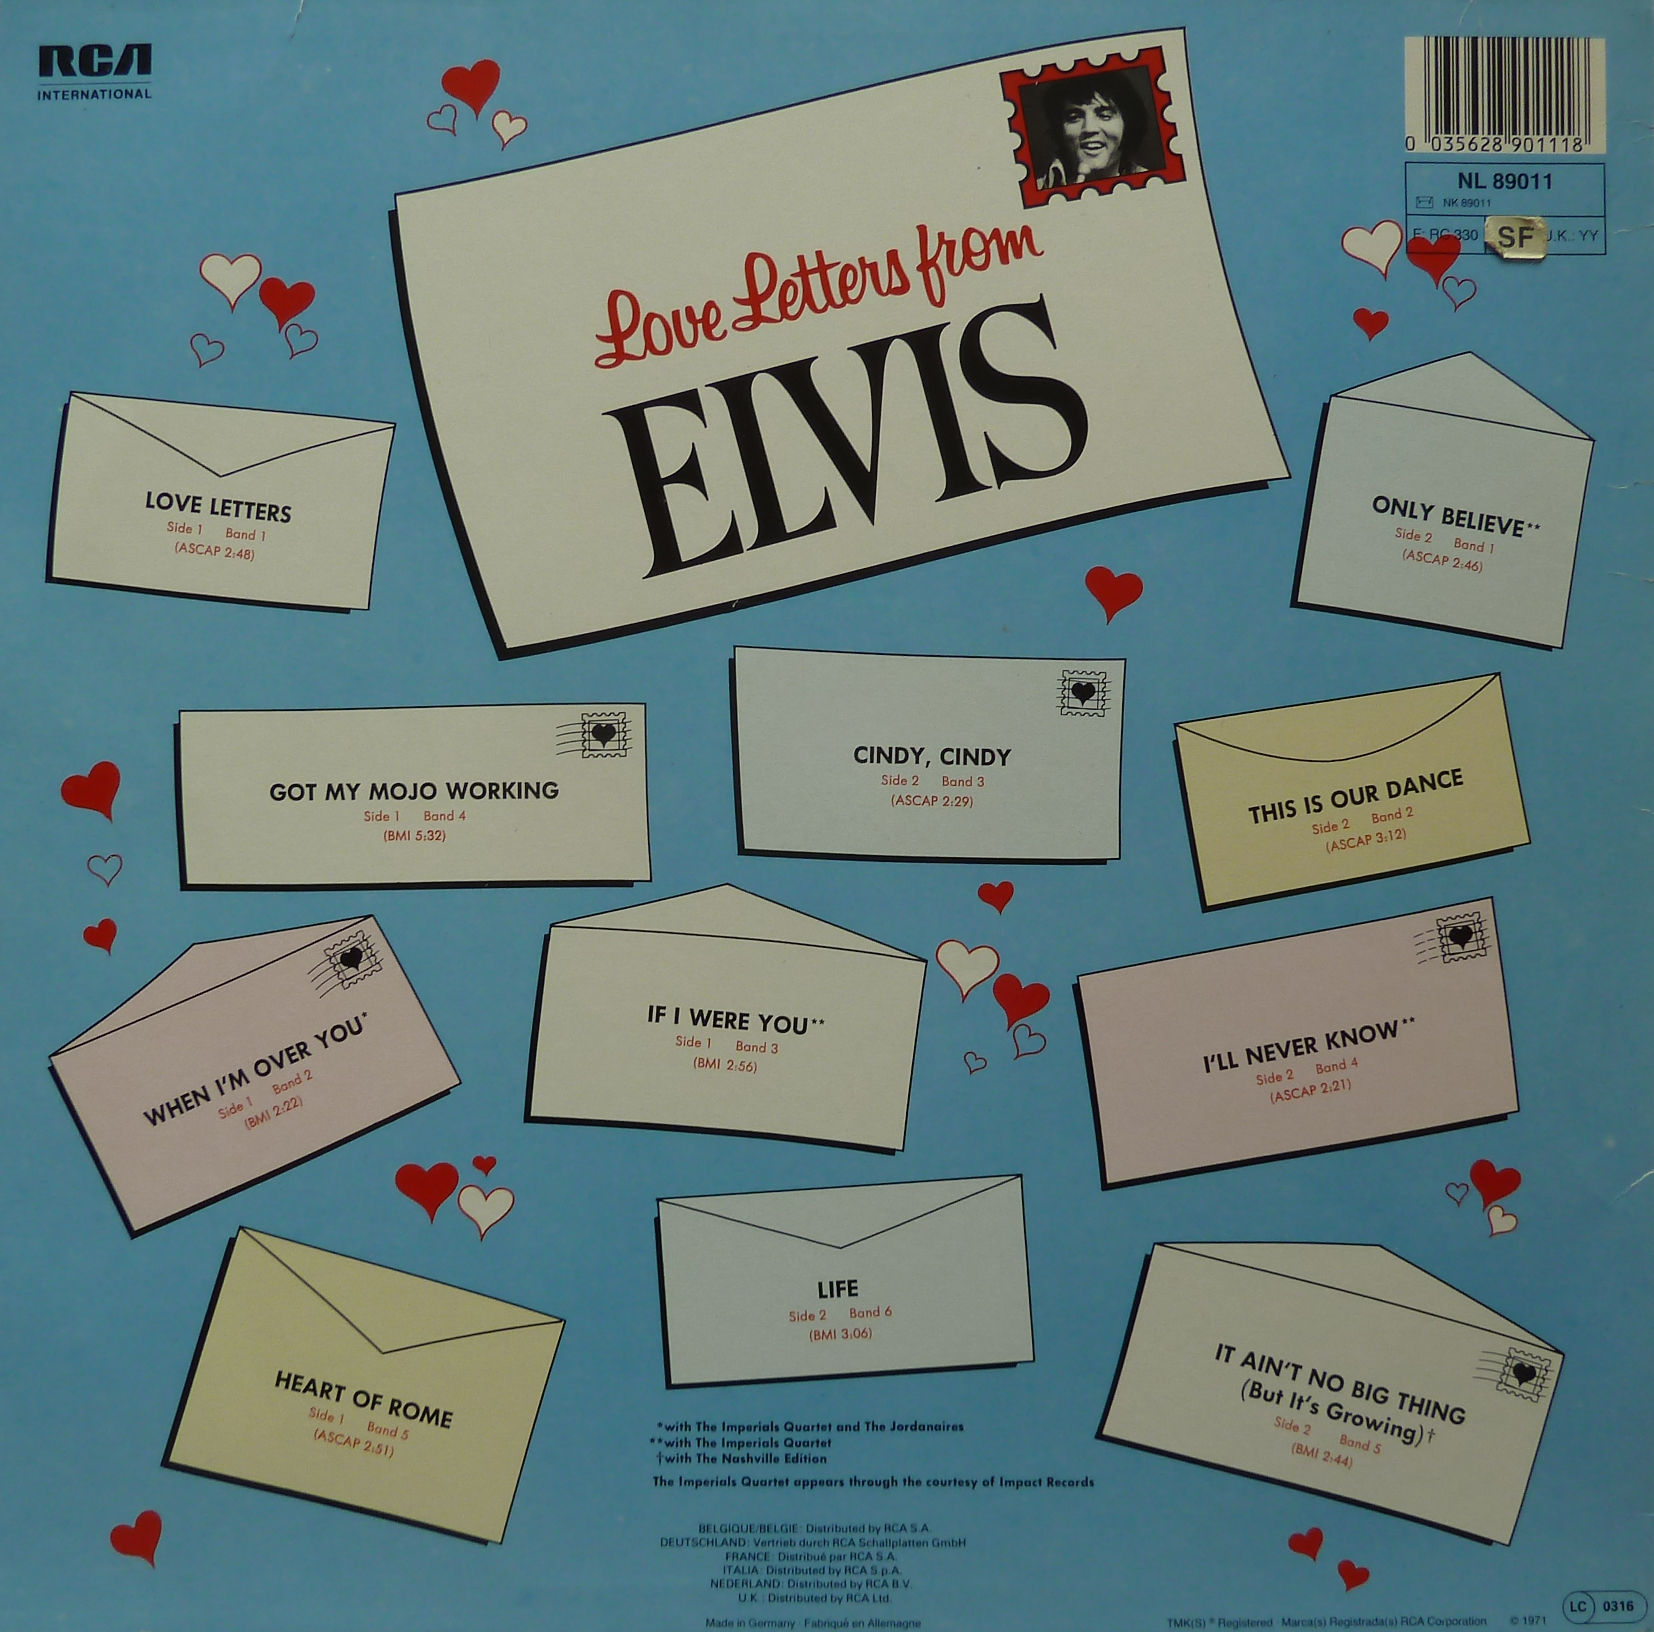 LOVE LETTERS FROM ELVIS Loveletters1990rckseiunqqq